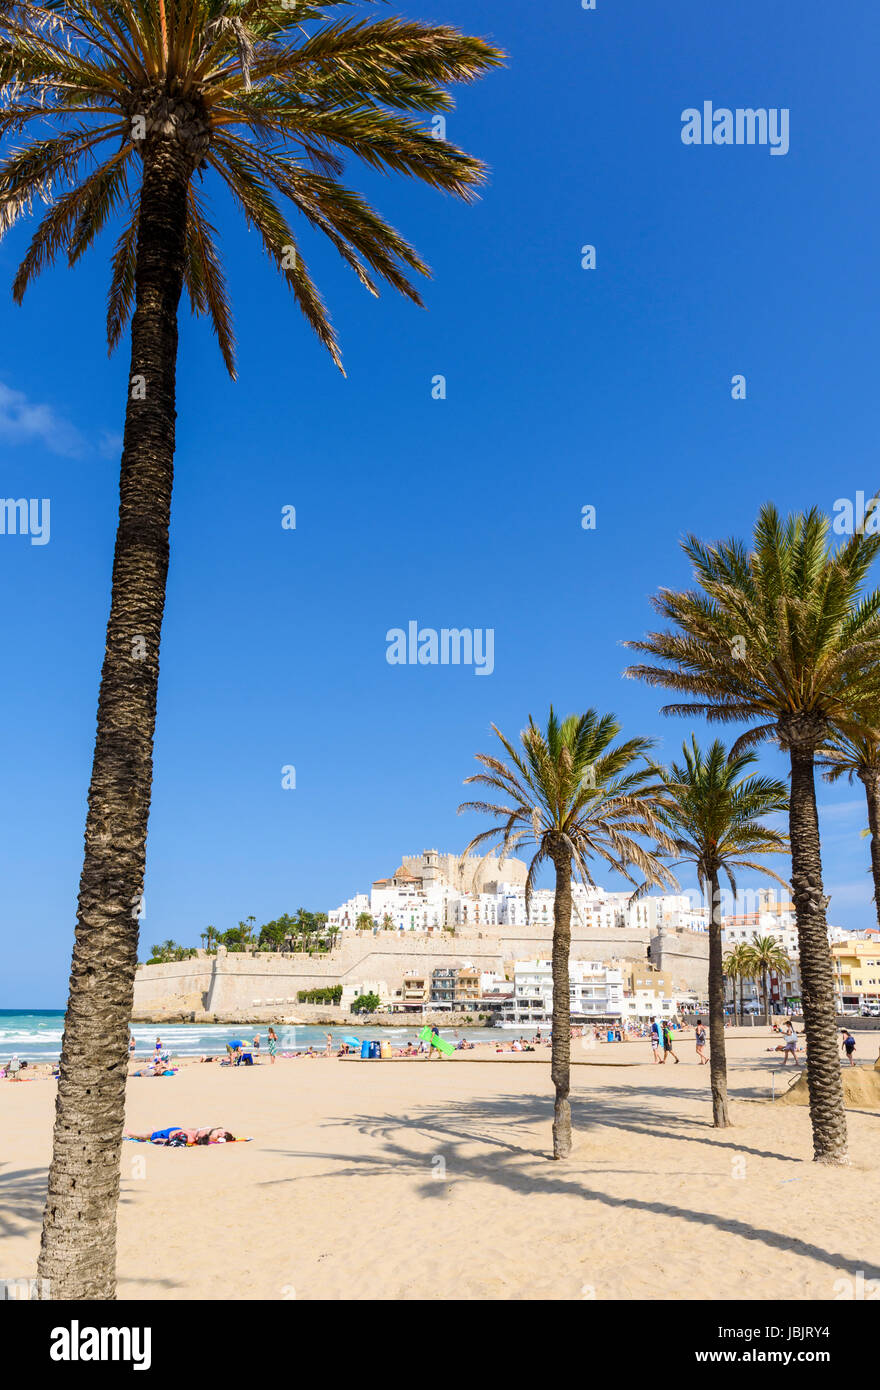 Palm trees on Playa Norte beach overlooked by Papa Luna Castle and old town, Peniscola, Spain - Stock Image